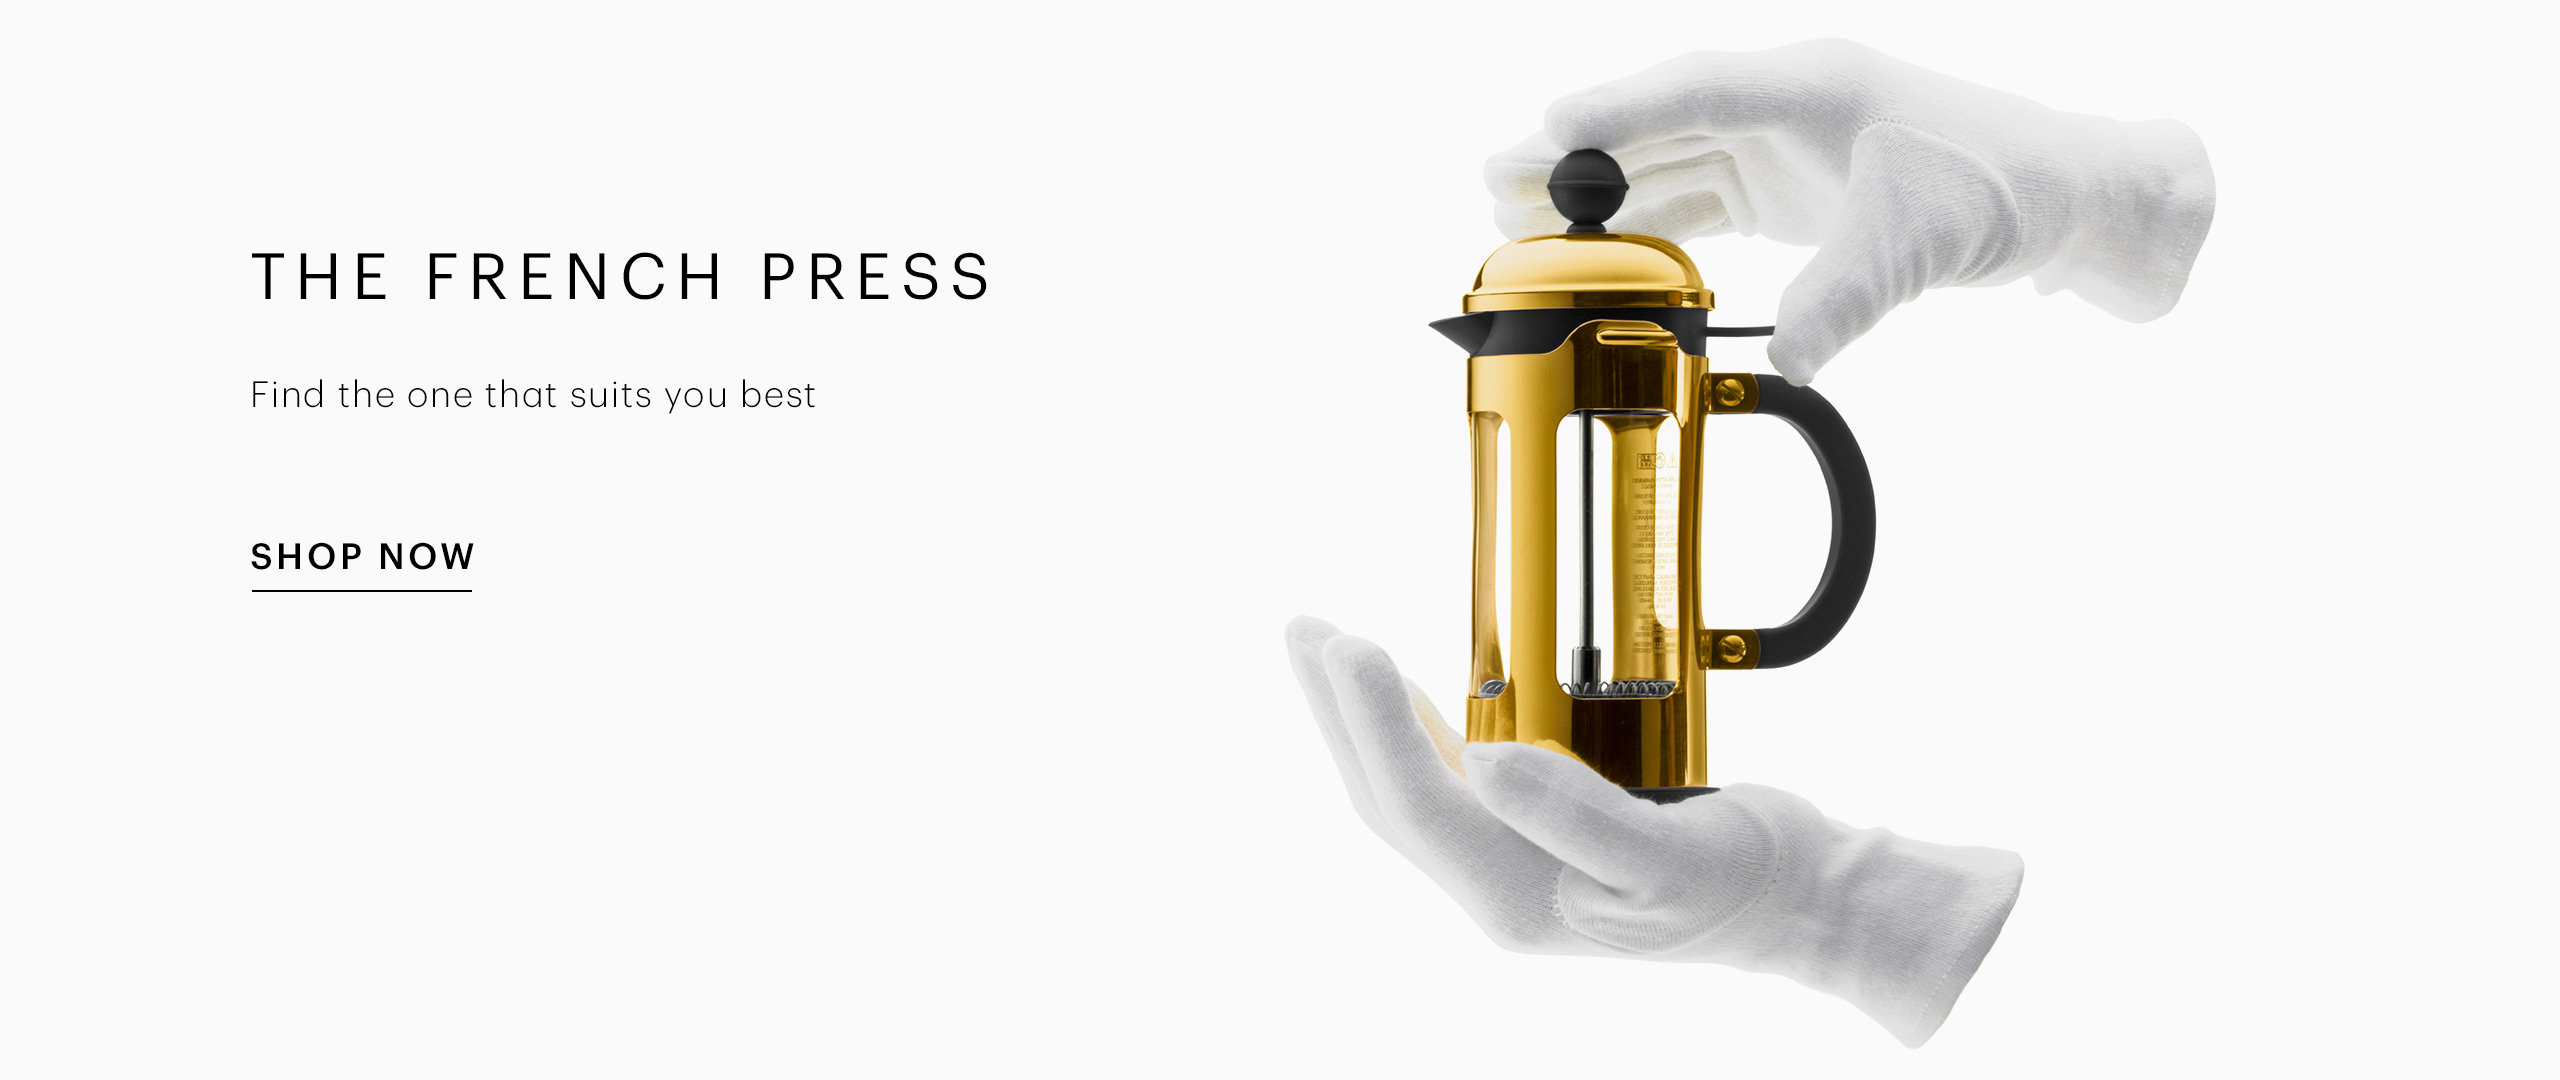 BEU [EN] - Perfect French Press